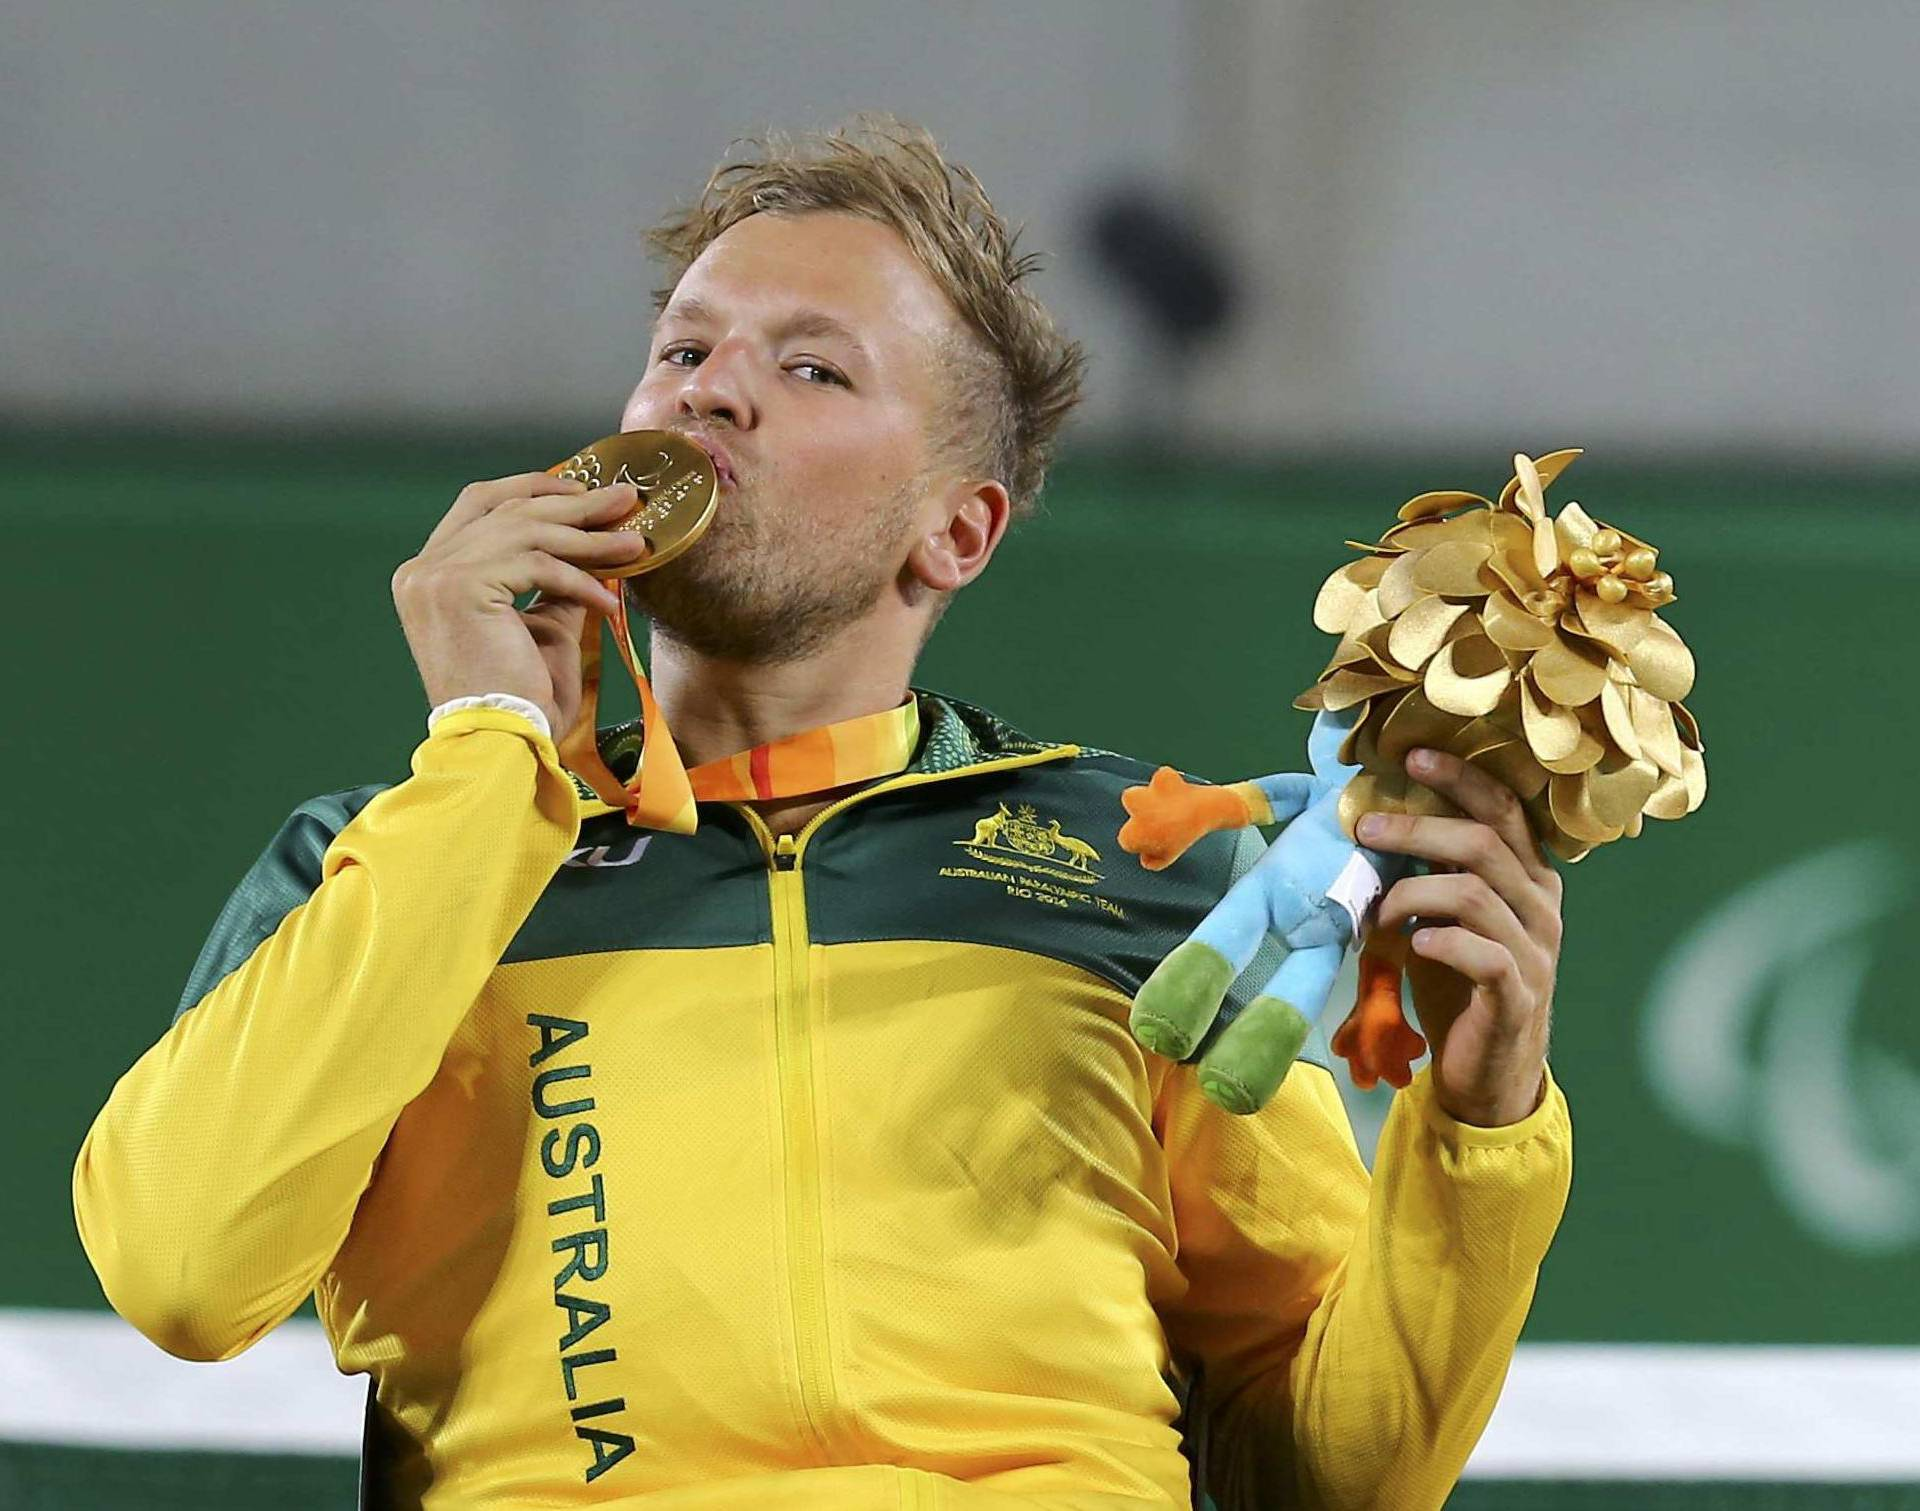 Wheelchair Tennis - Quad Doubles Gold Medal Match Victory Ceremony